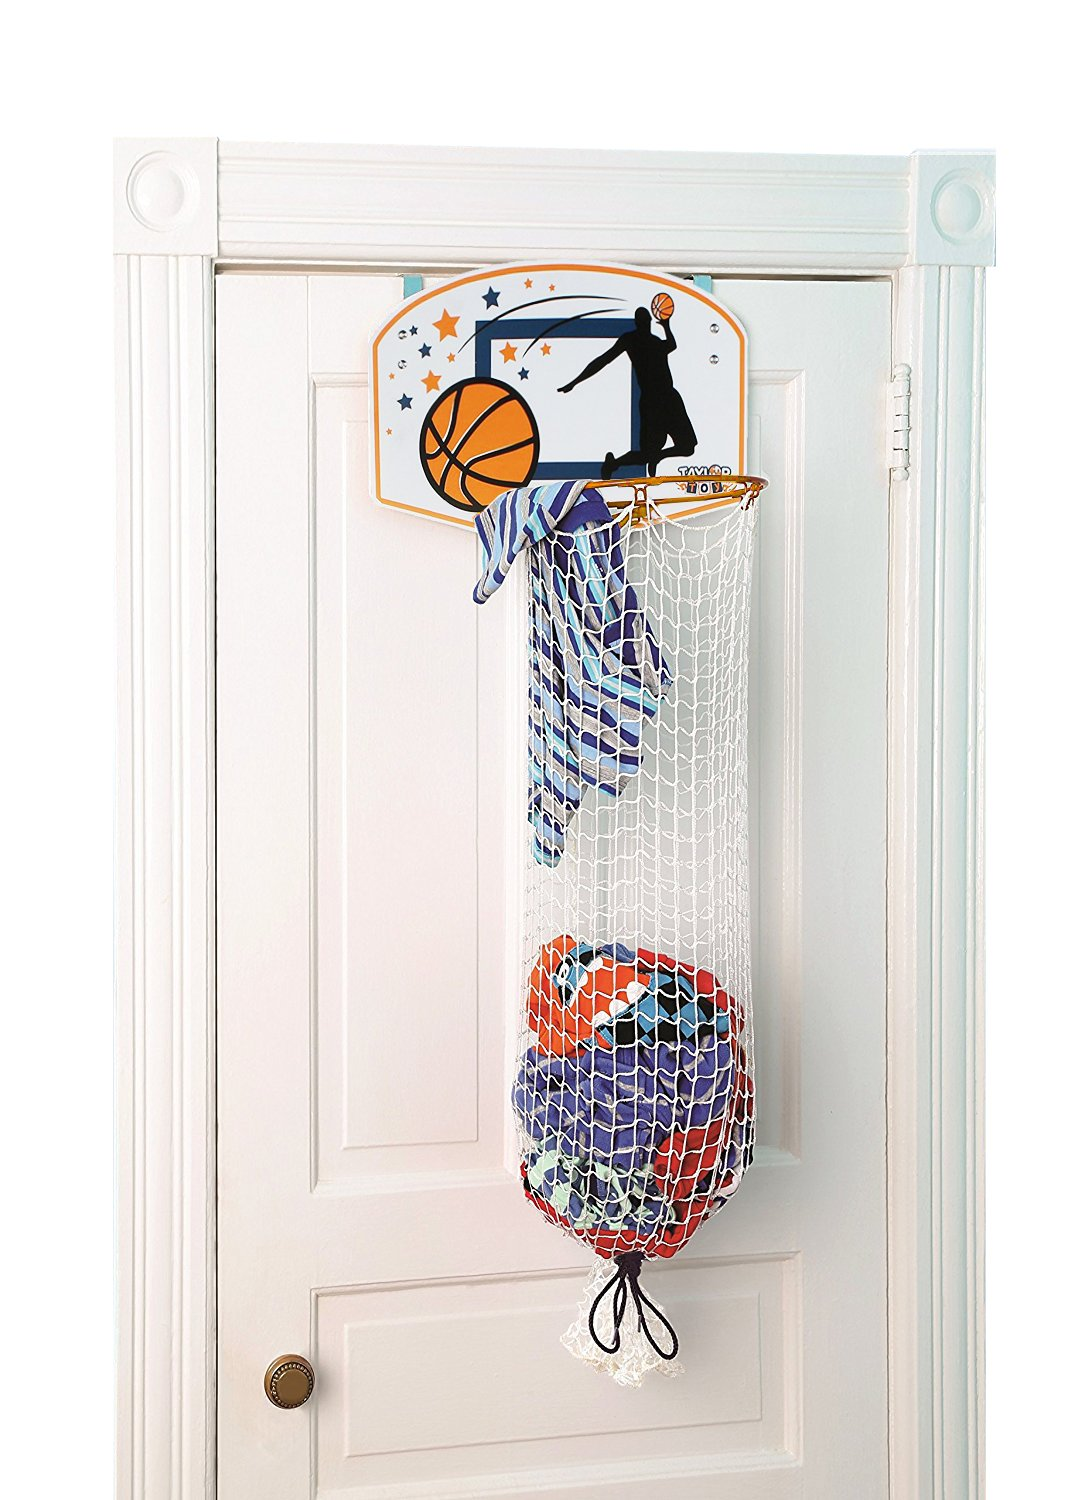 Taylor Toy Over The Door Basketball Clothes Hamper helps make a boring chore fun! Now your kids will want to pick up their dirty laundry! Convenient Storage: hooks on backboard allow it to be easily hung on door.